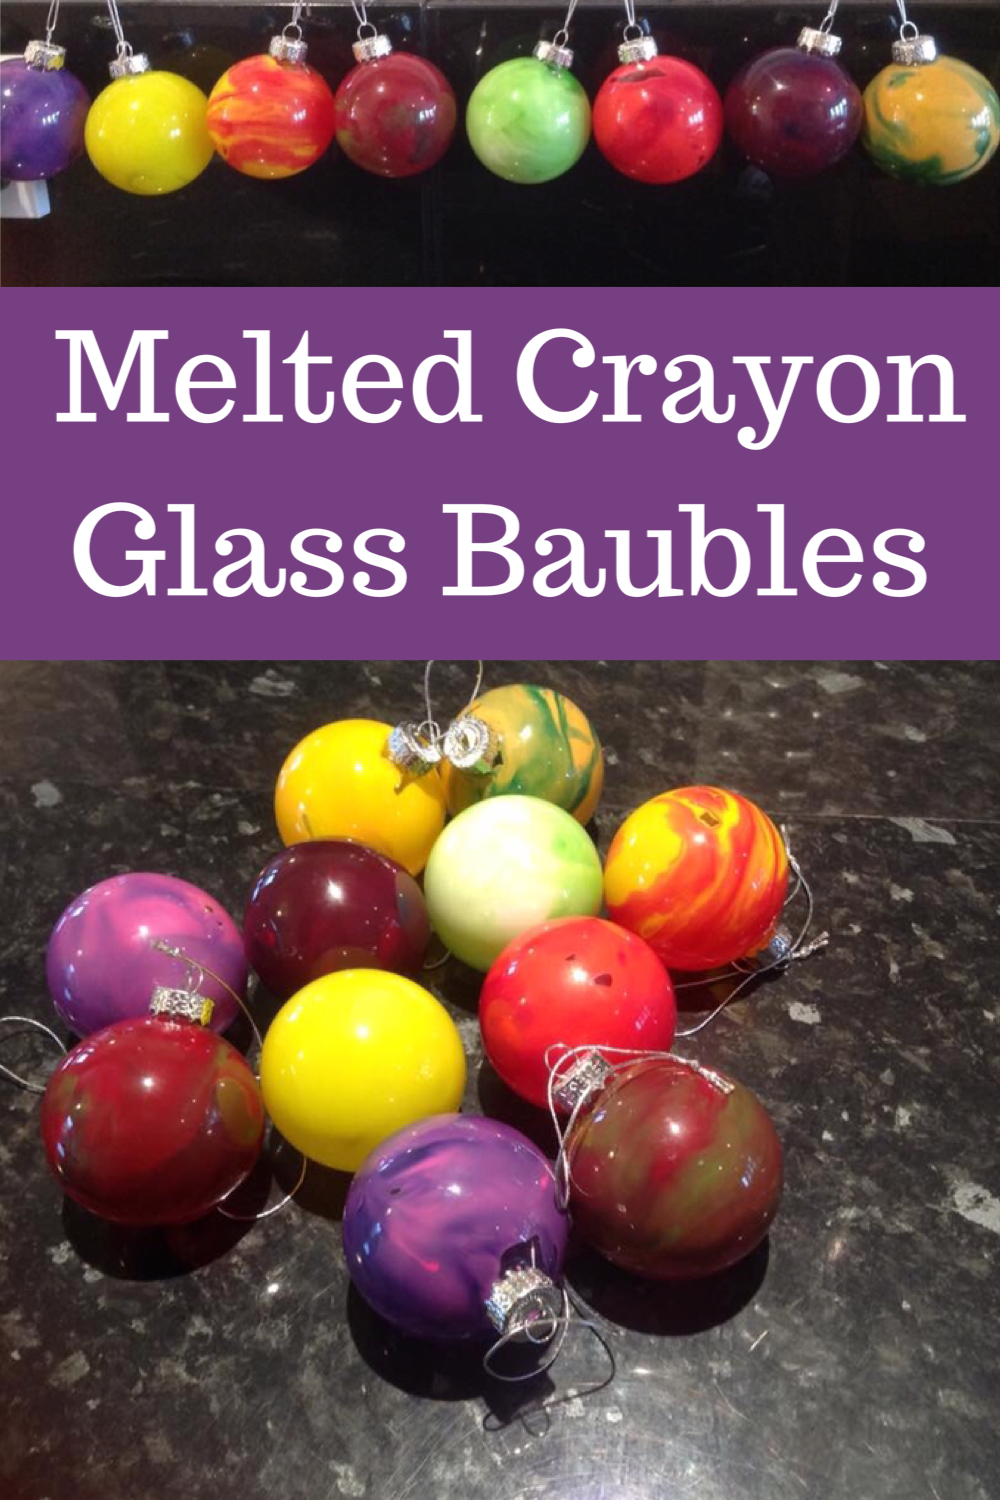 Melted crayon Glass Baubles